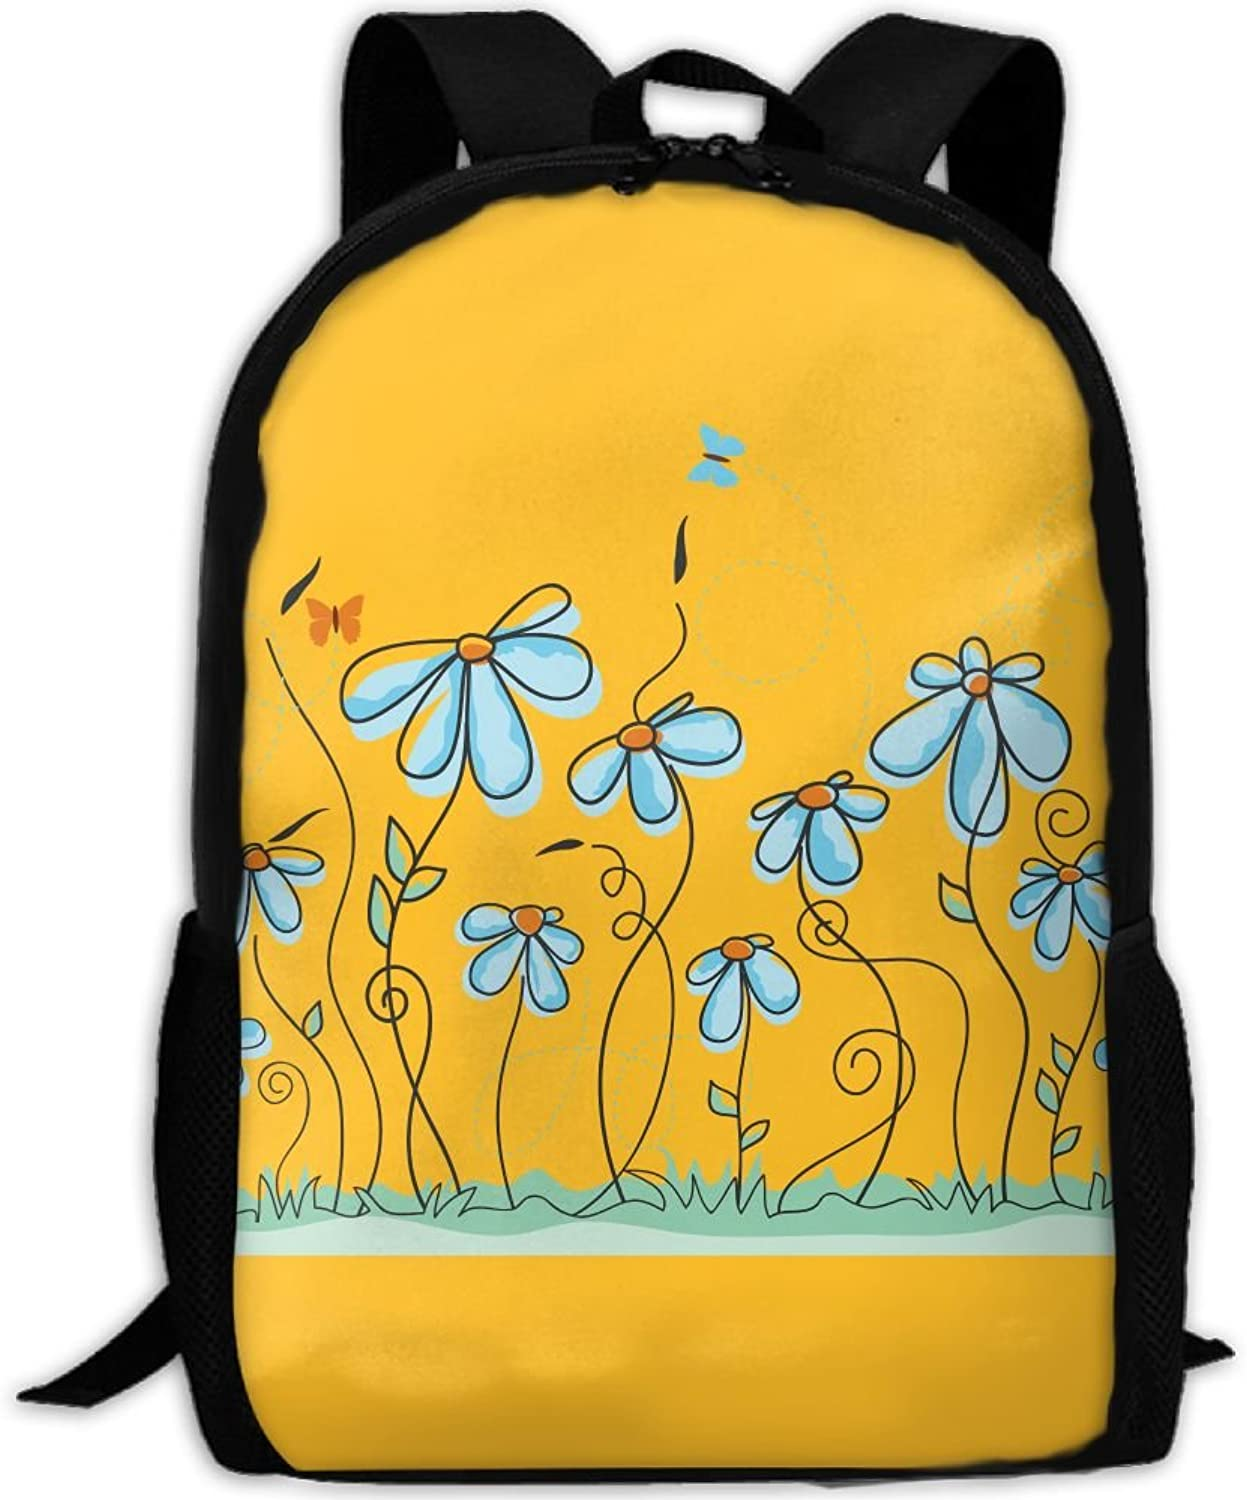 ed41f1d399a2e Backpack Laptop Hiking School Bags bluee Flowers Butterfly Shoulder ...